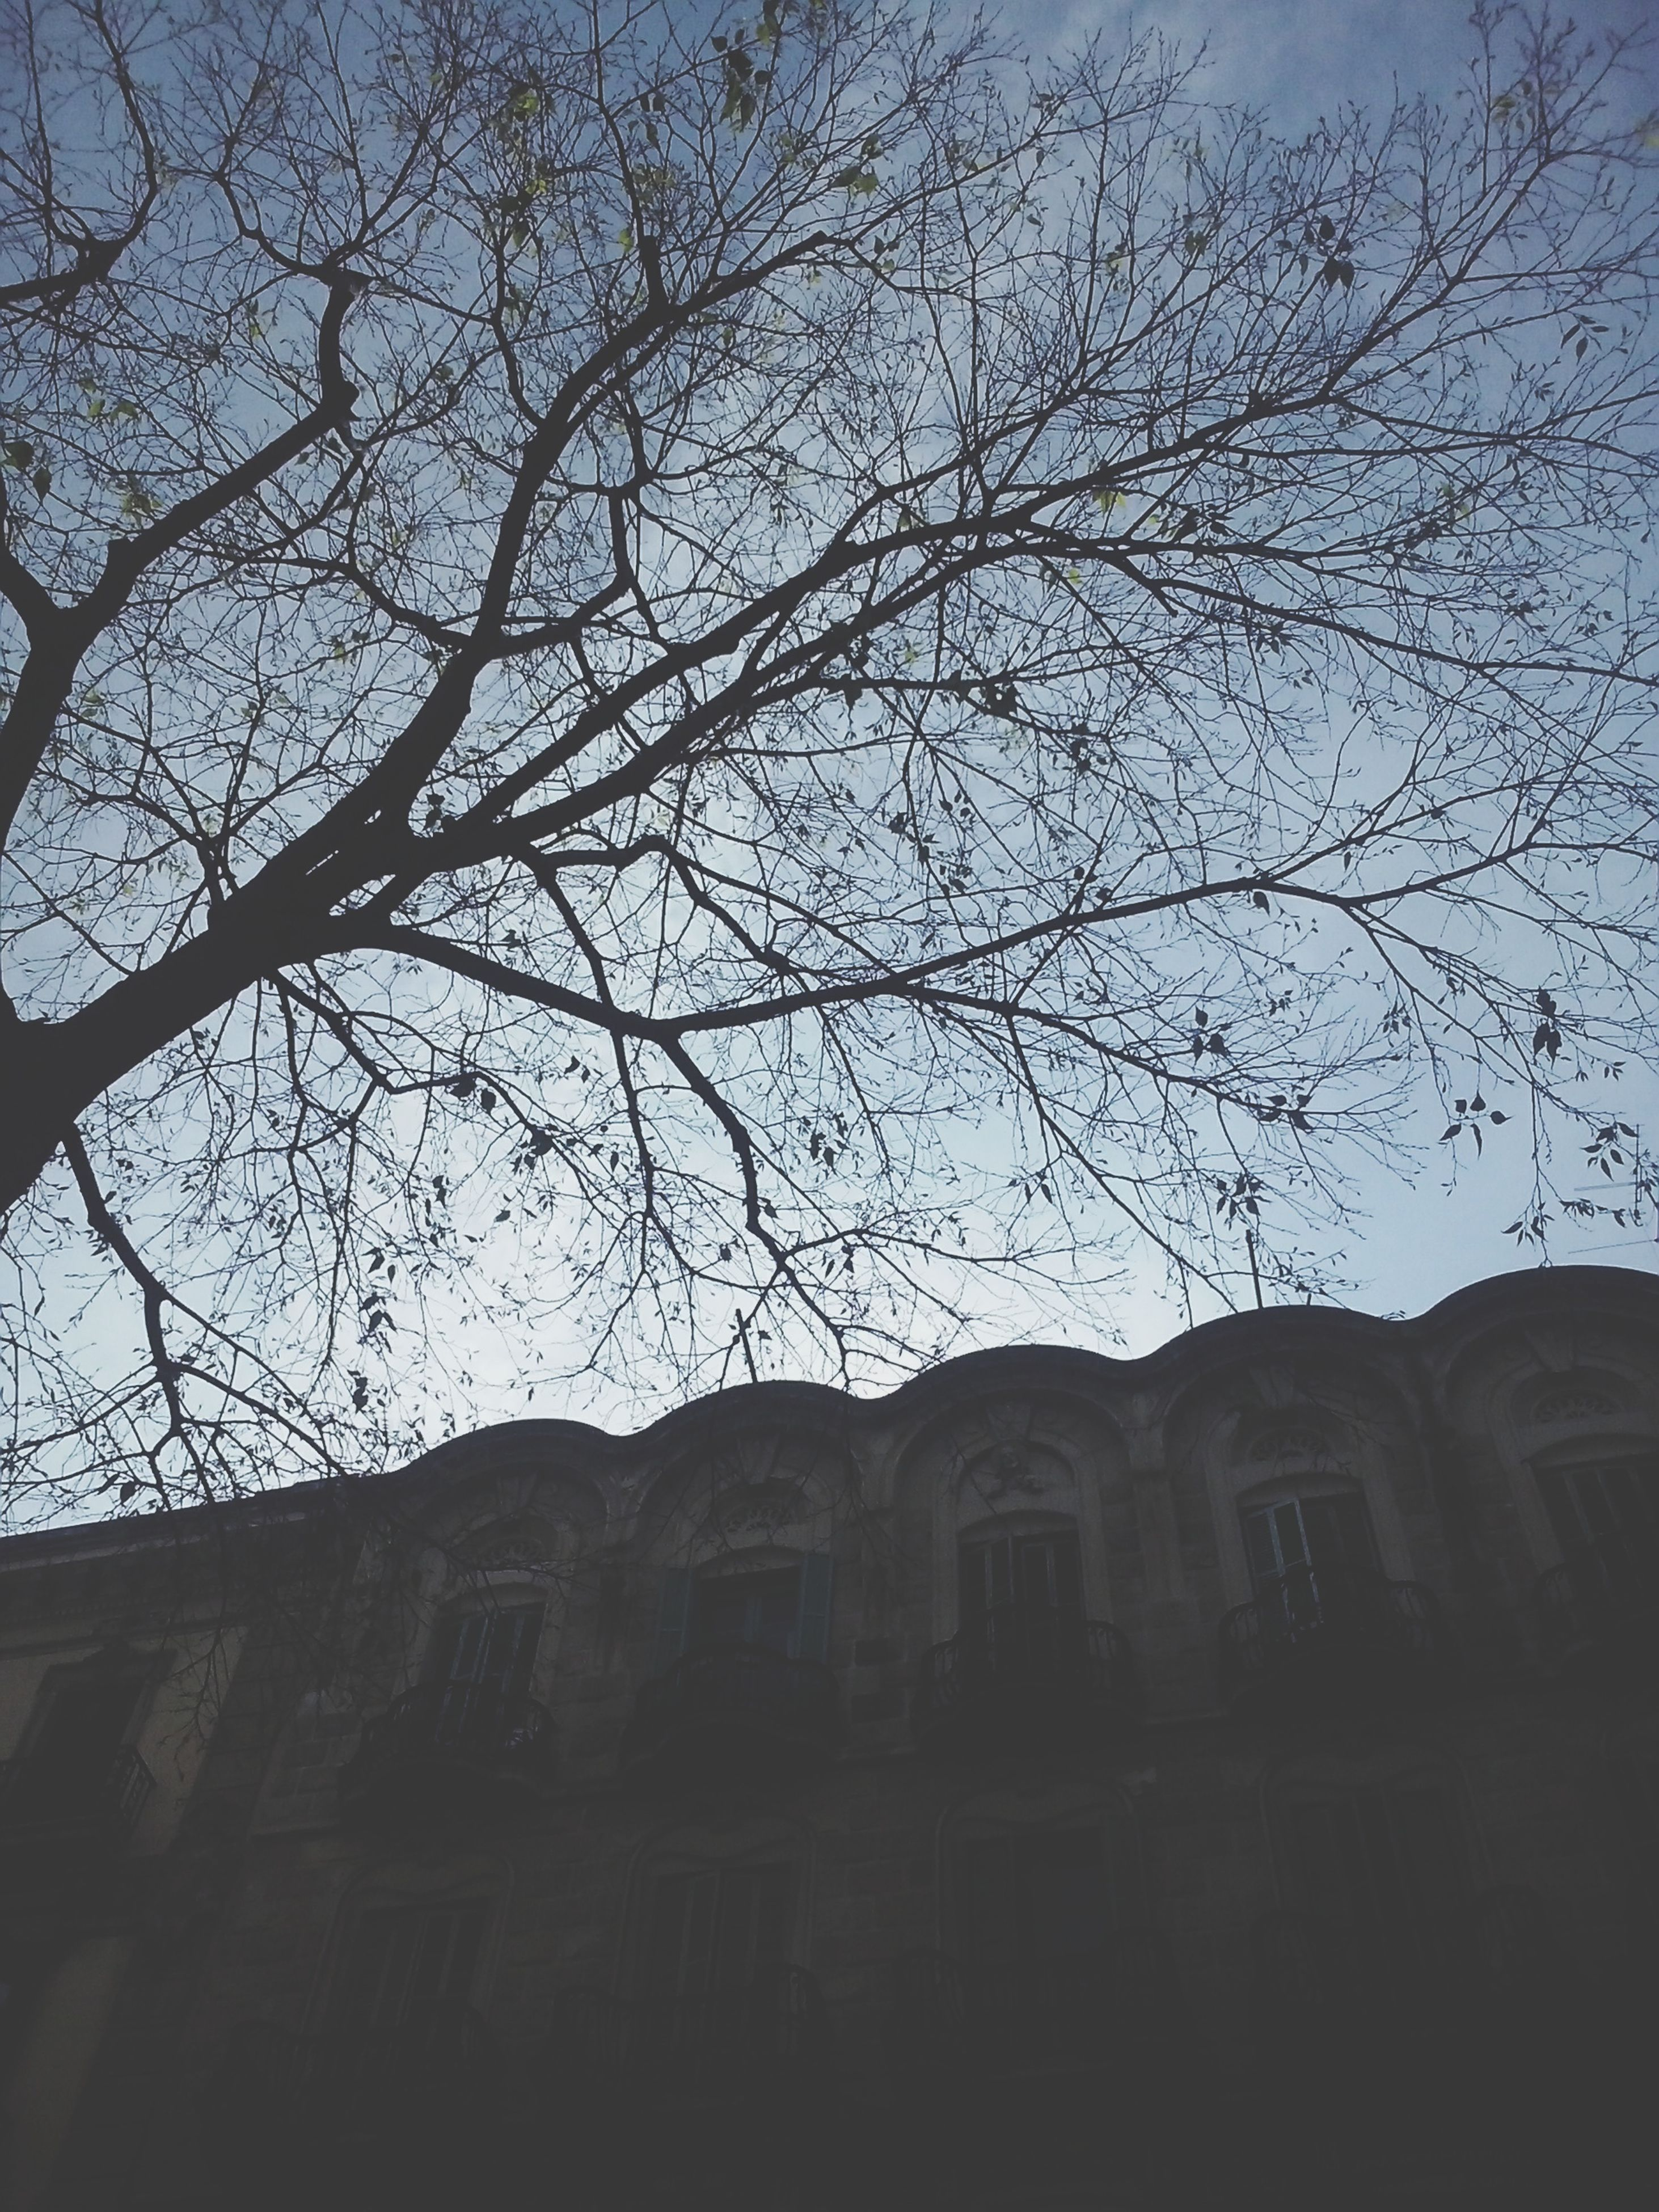 low angle view, architecture, building exterior, built structure, tree, branch, bare tree, sky, silhouette, building, clear sky, residential building, outdoors, no people, residential structure, city, day, window, growth, house